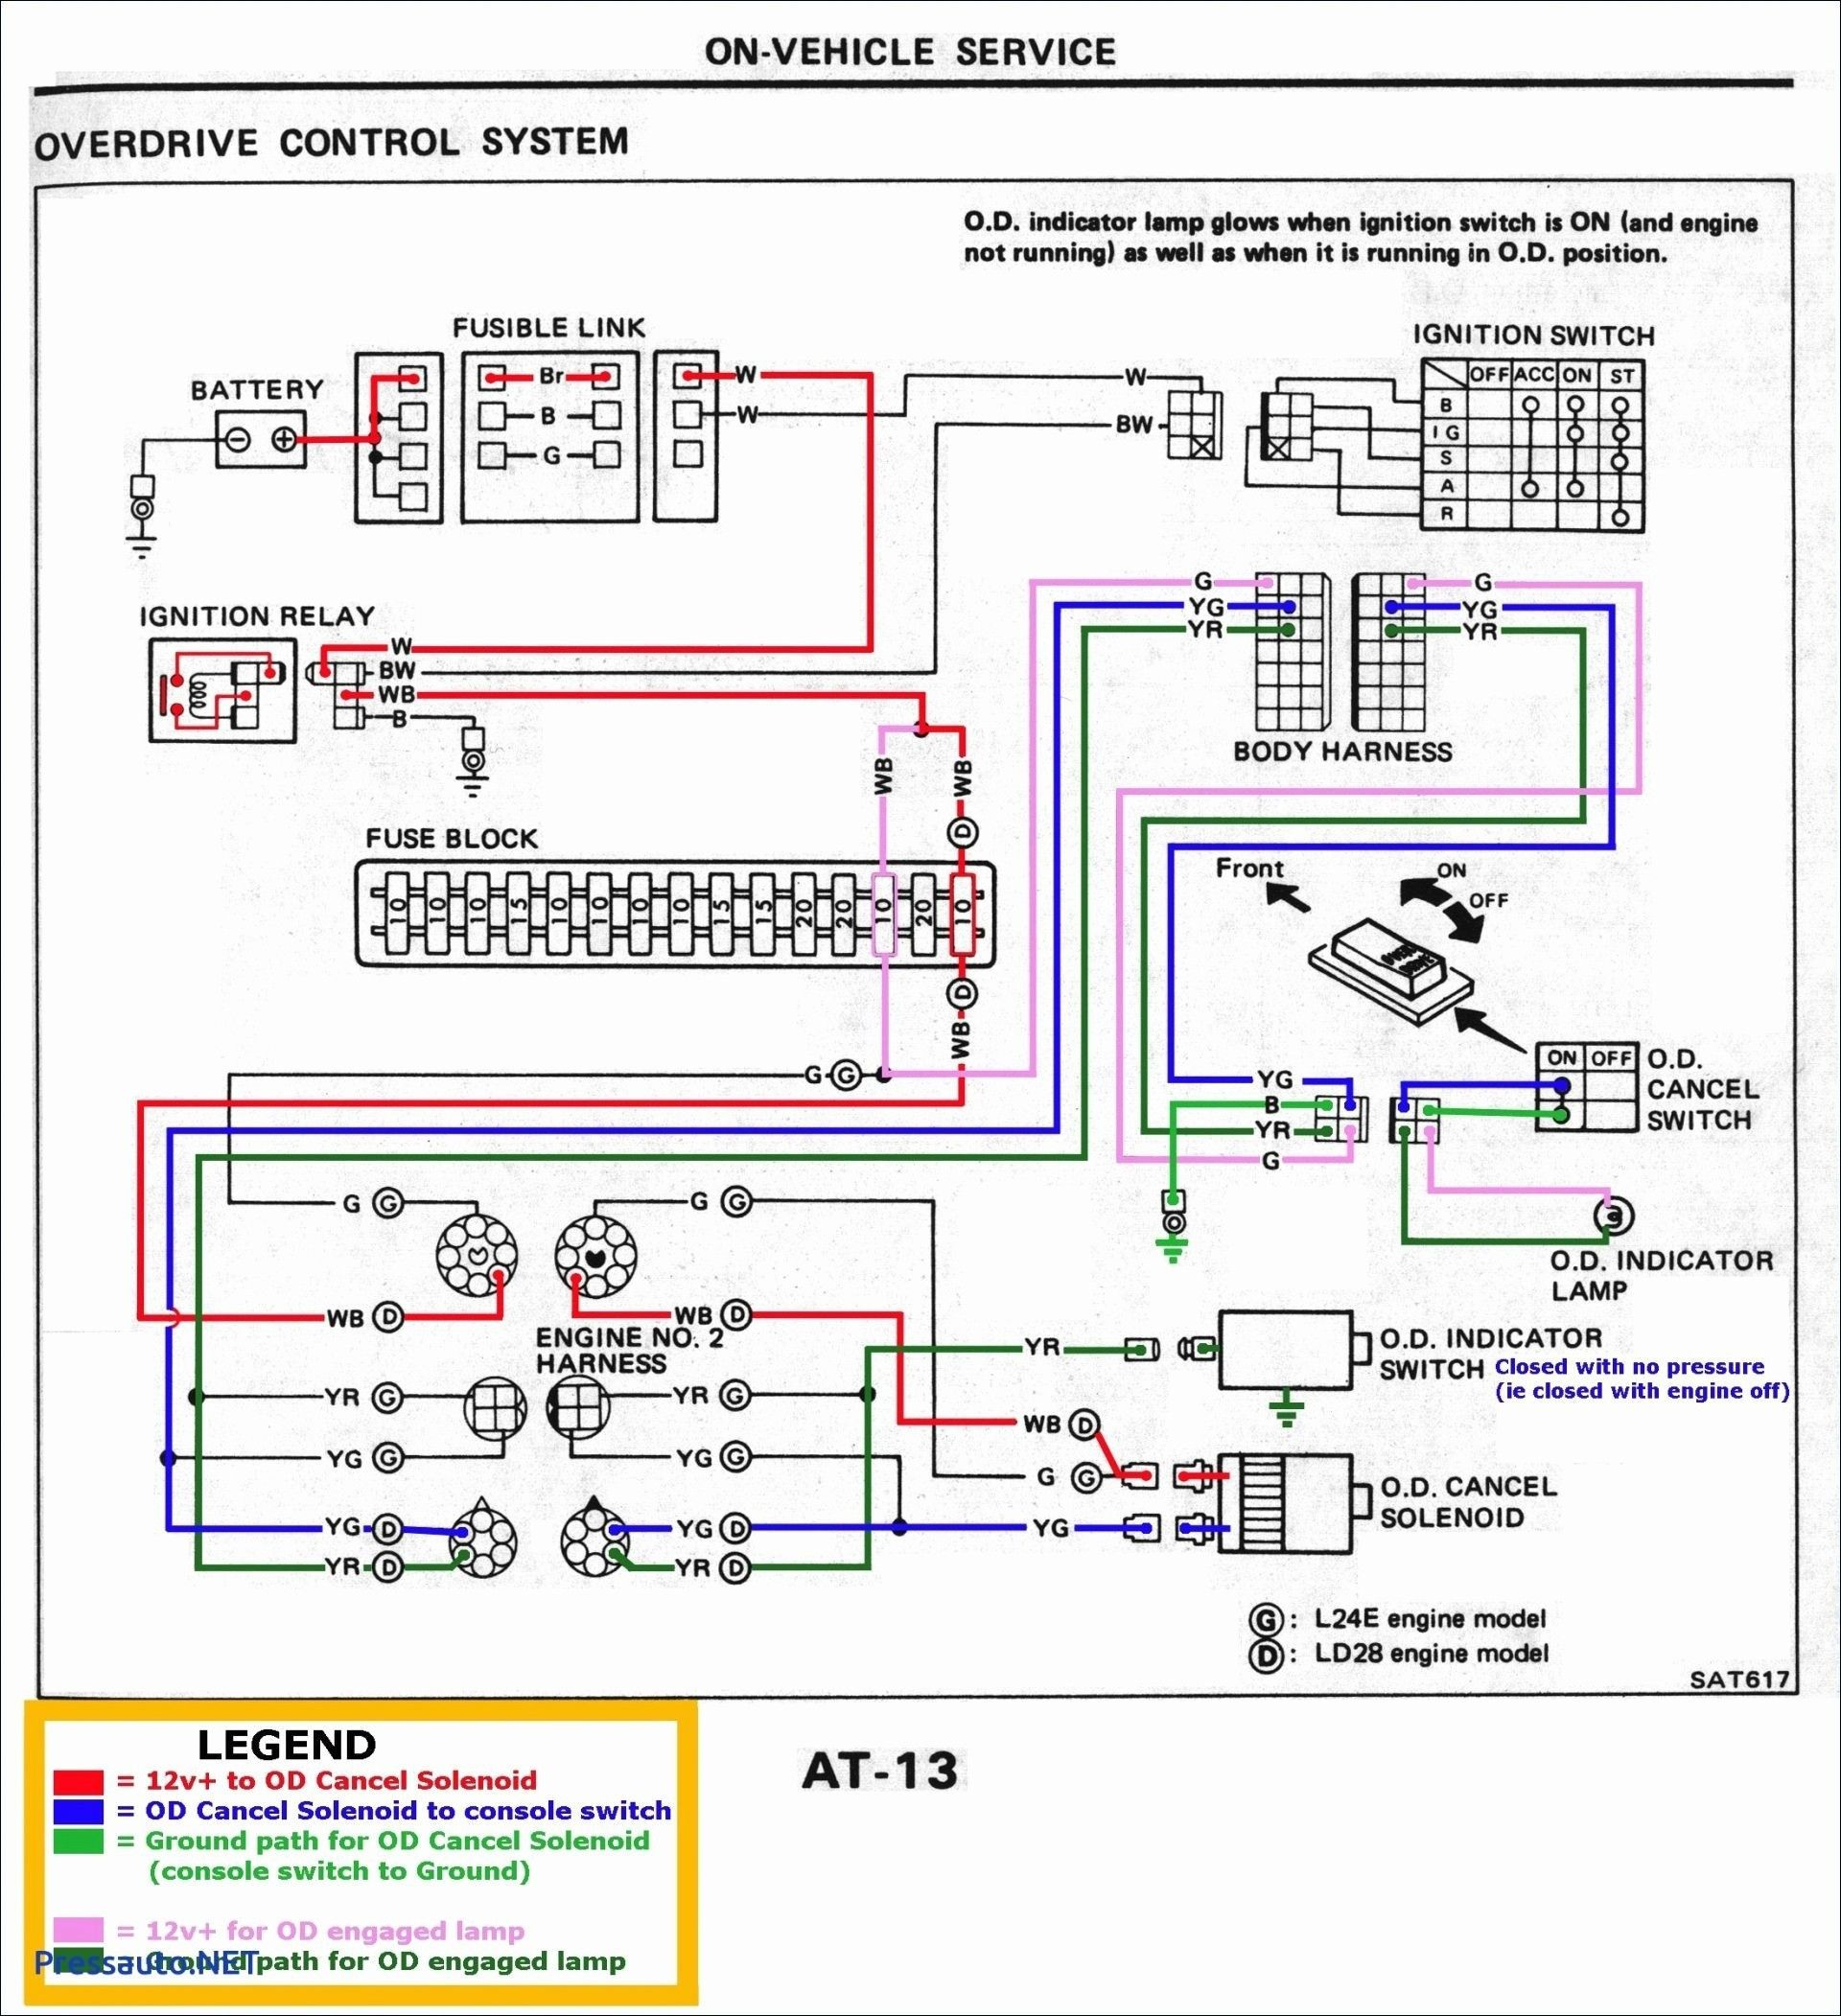 Best Of Single Switch Wiring Diagram in 2020 | Electrical wiring diagram,  Trailer wiring diagram, Light switch wiringPinterest